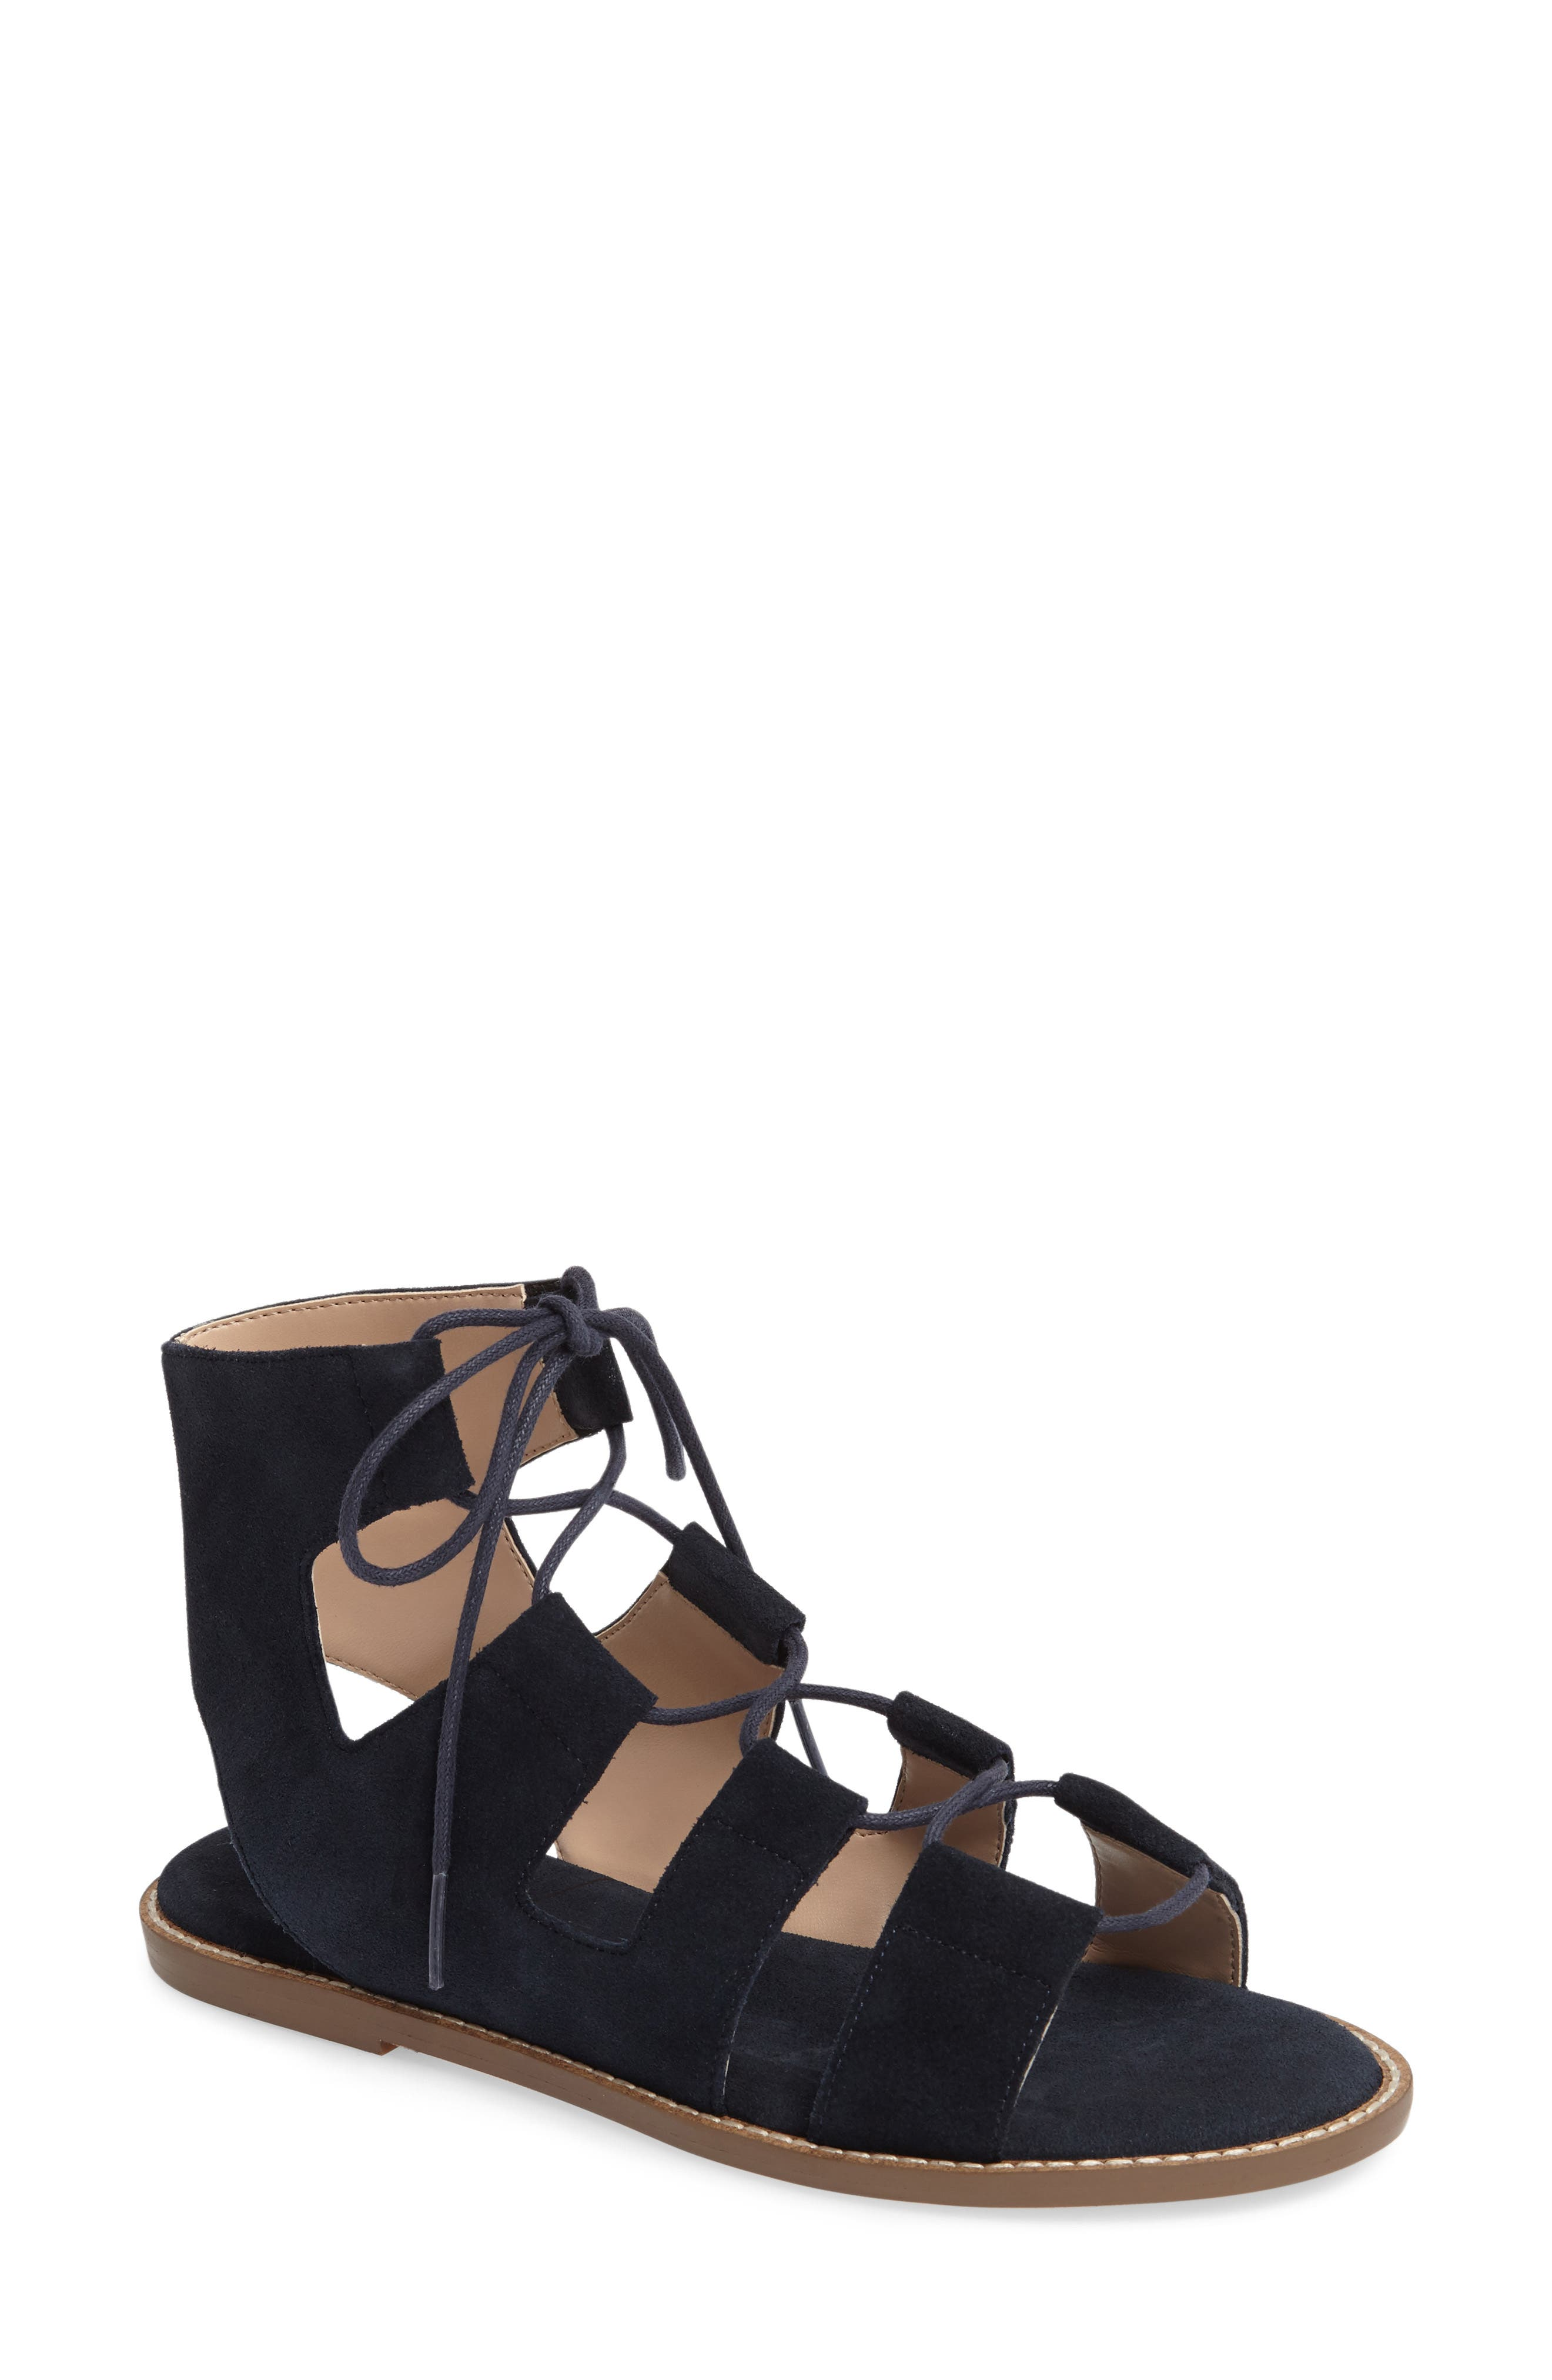 'Cady' Lace-Up Flat Sandal,                             Main thumbnail 1, color,                             Ink Navy Suede